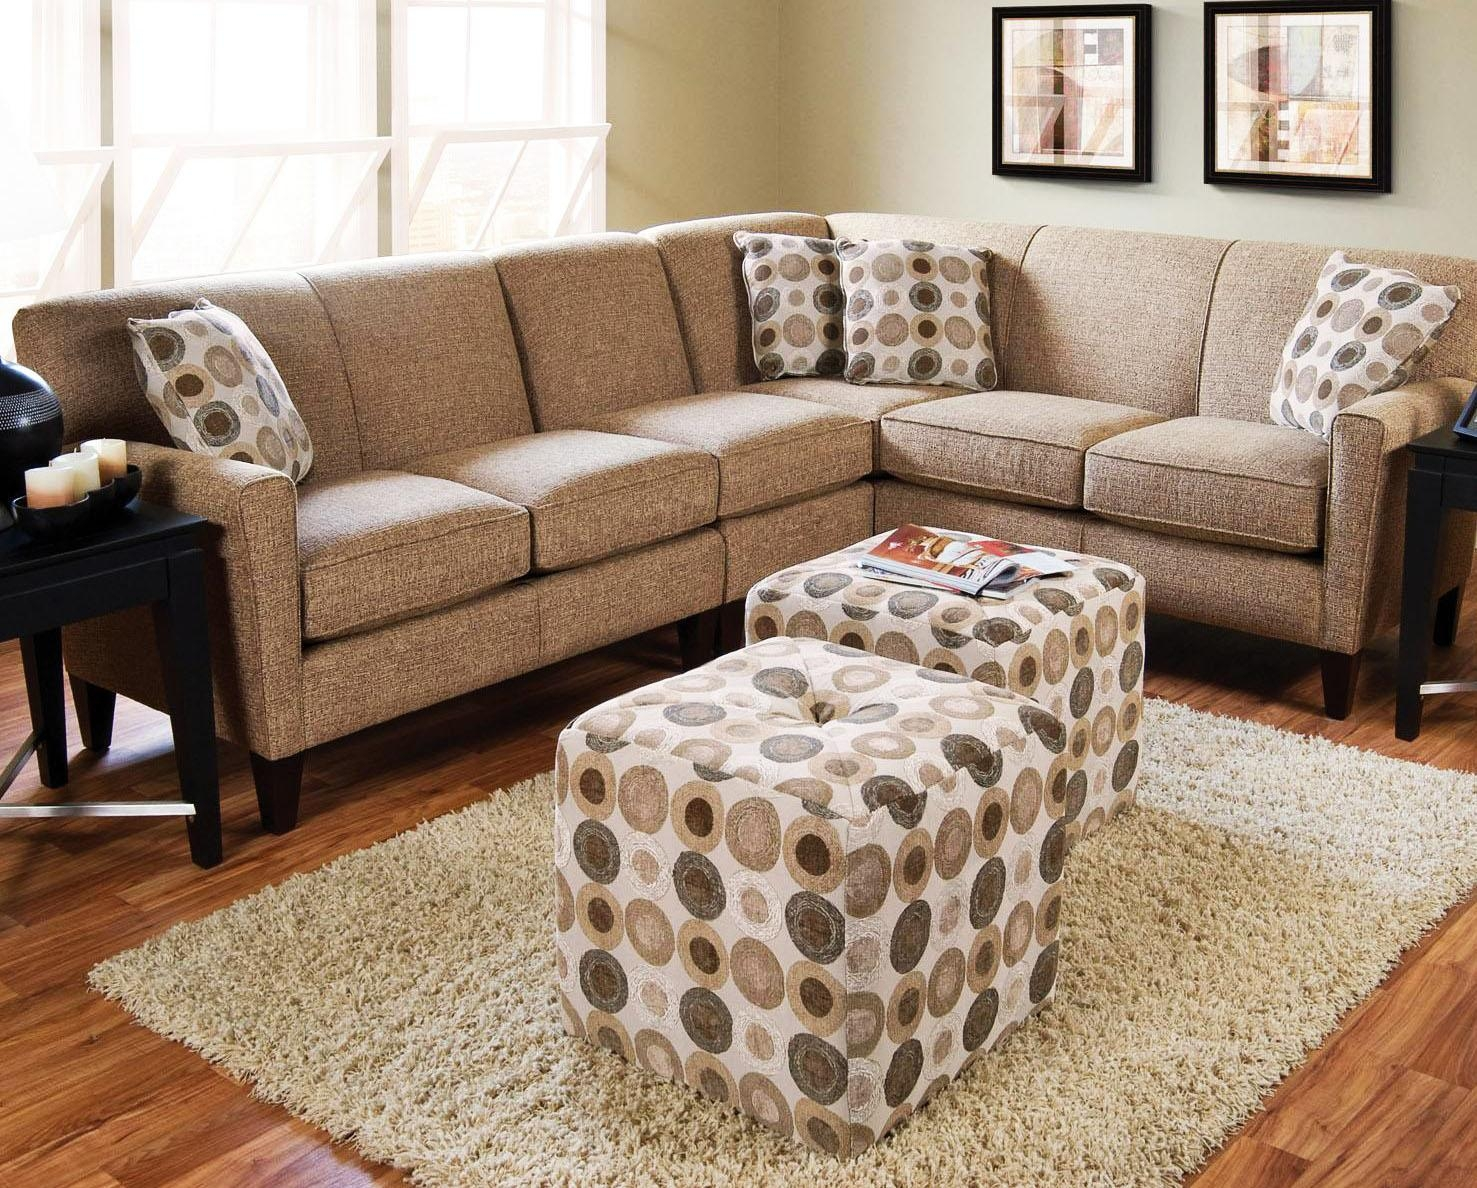 Small Space Sofas Sectionals | Tehranmix Decoration In Inexpensive Sectional Sofas For Small Spaces (Image 17 of 20)